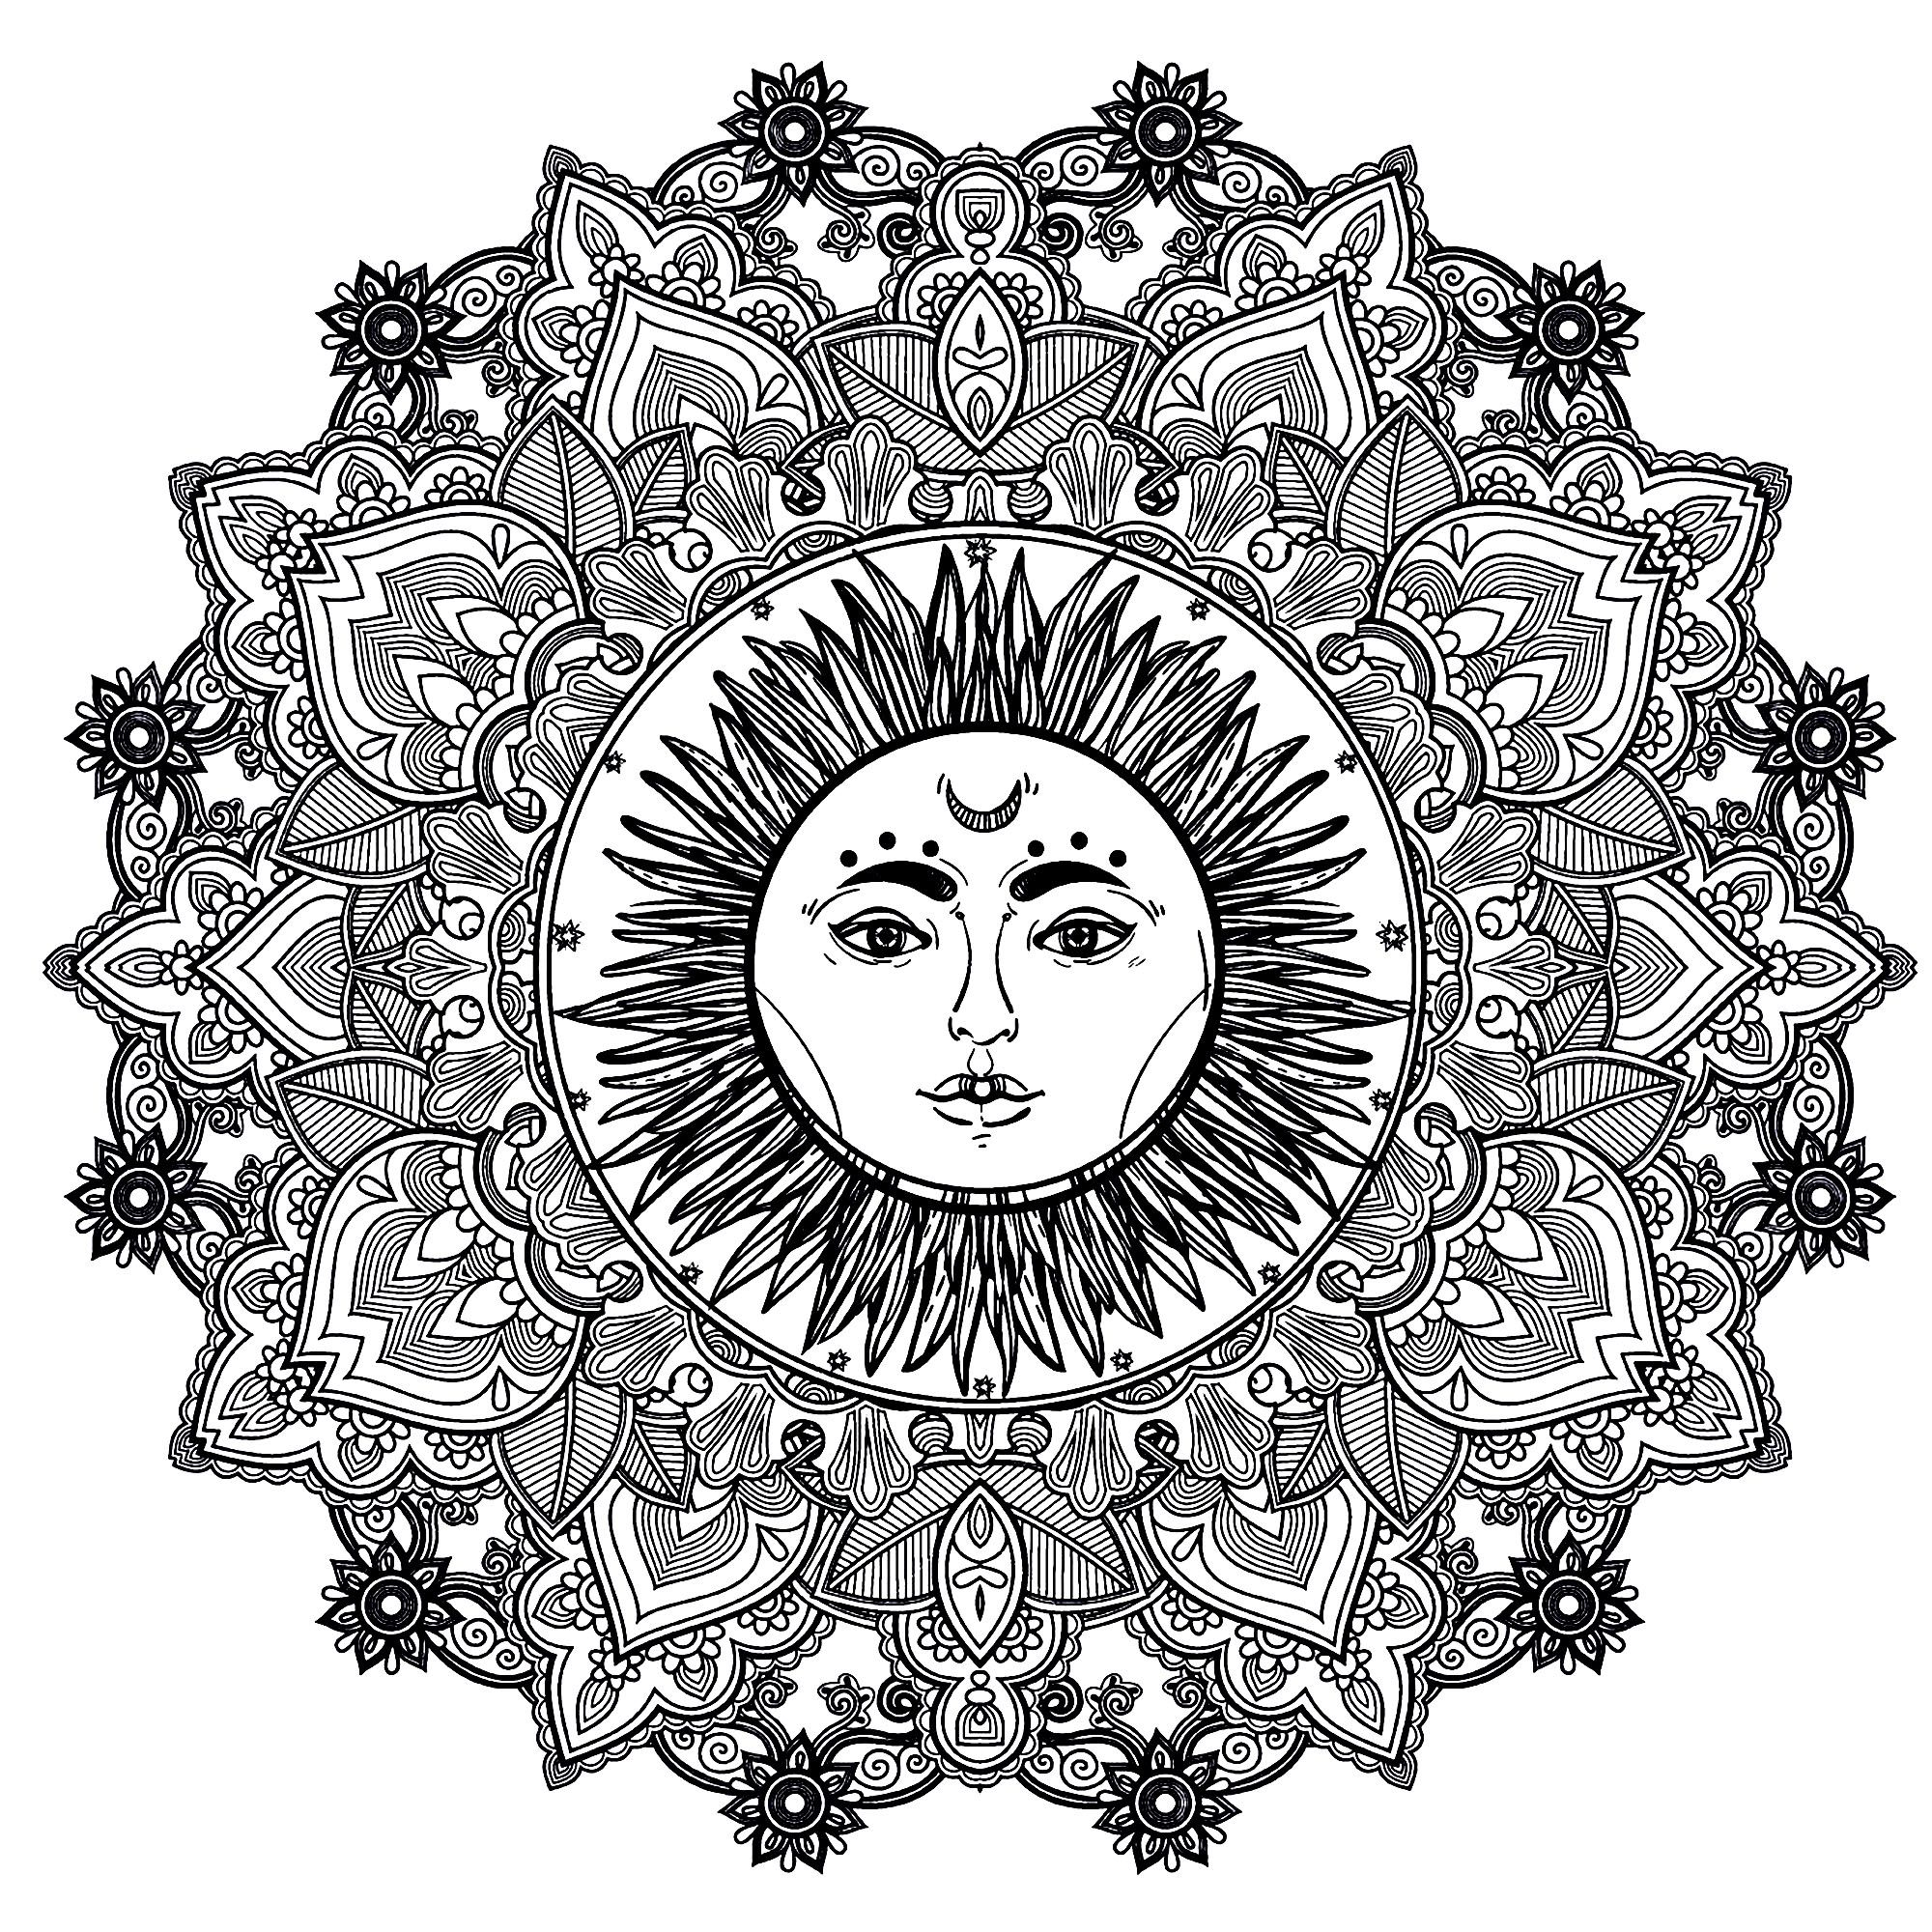 Mandala To Color With Beautiful Sun In Center From The Gallery Mandalas Mandala Coloring Pages Mandala Coloring Books Sun Mandala